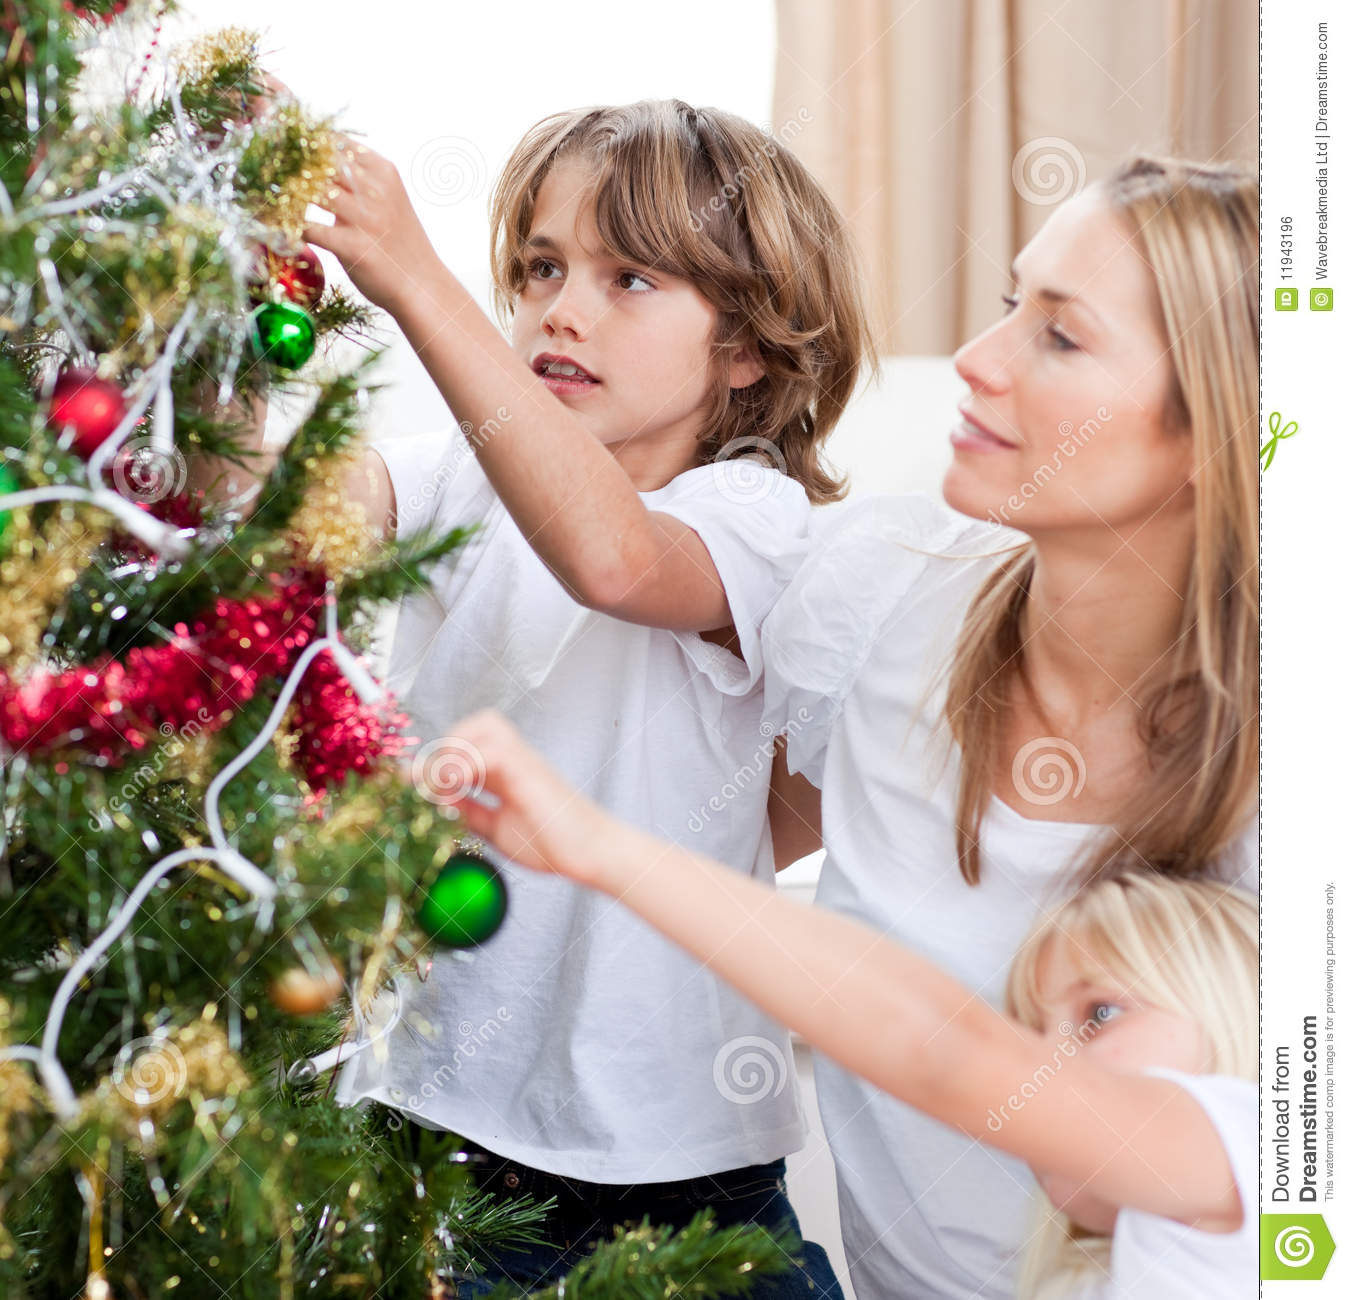 Children hanging Christmas decorations